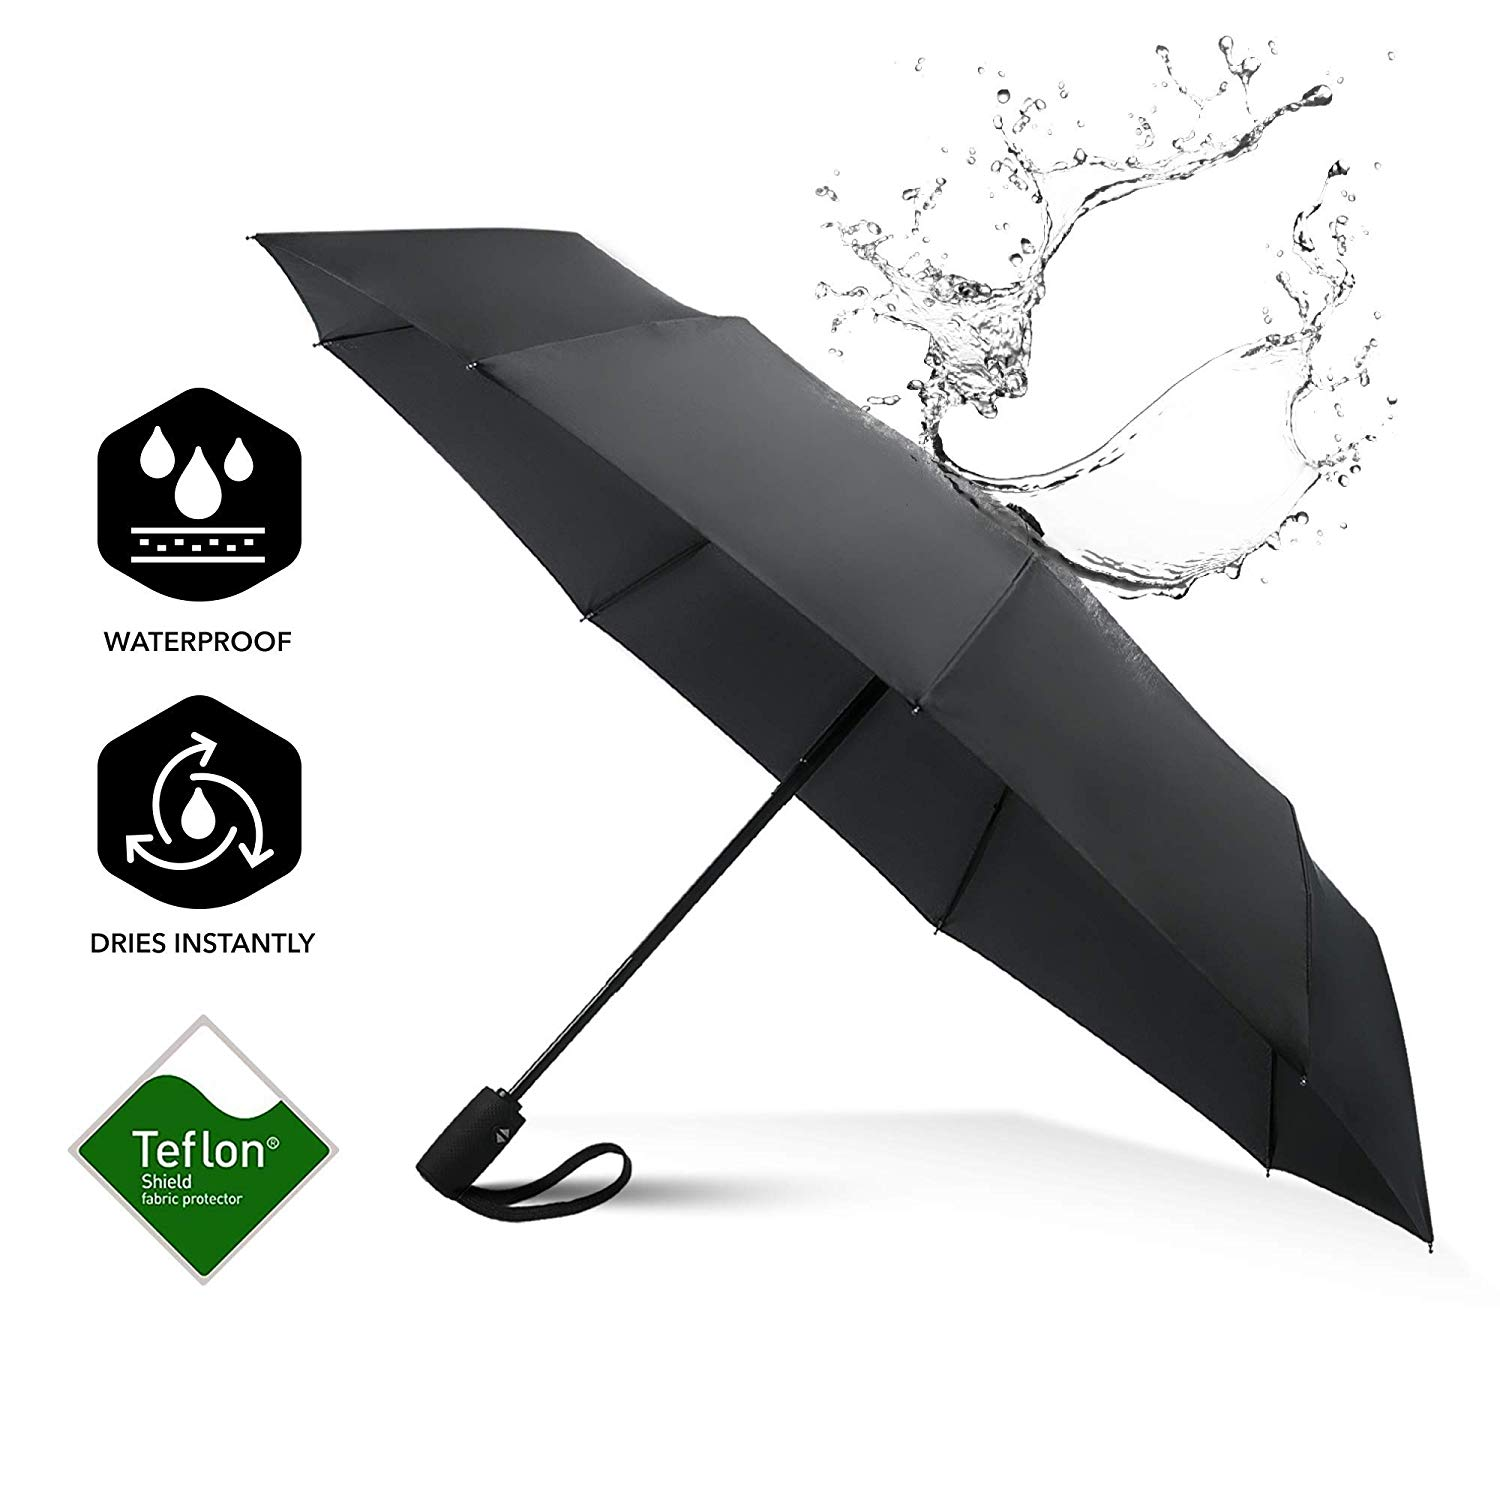 2019 New Invention 21inch*8k Led Lamp 3 Fold Umbrella With Auto Open And Close